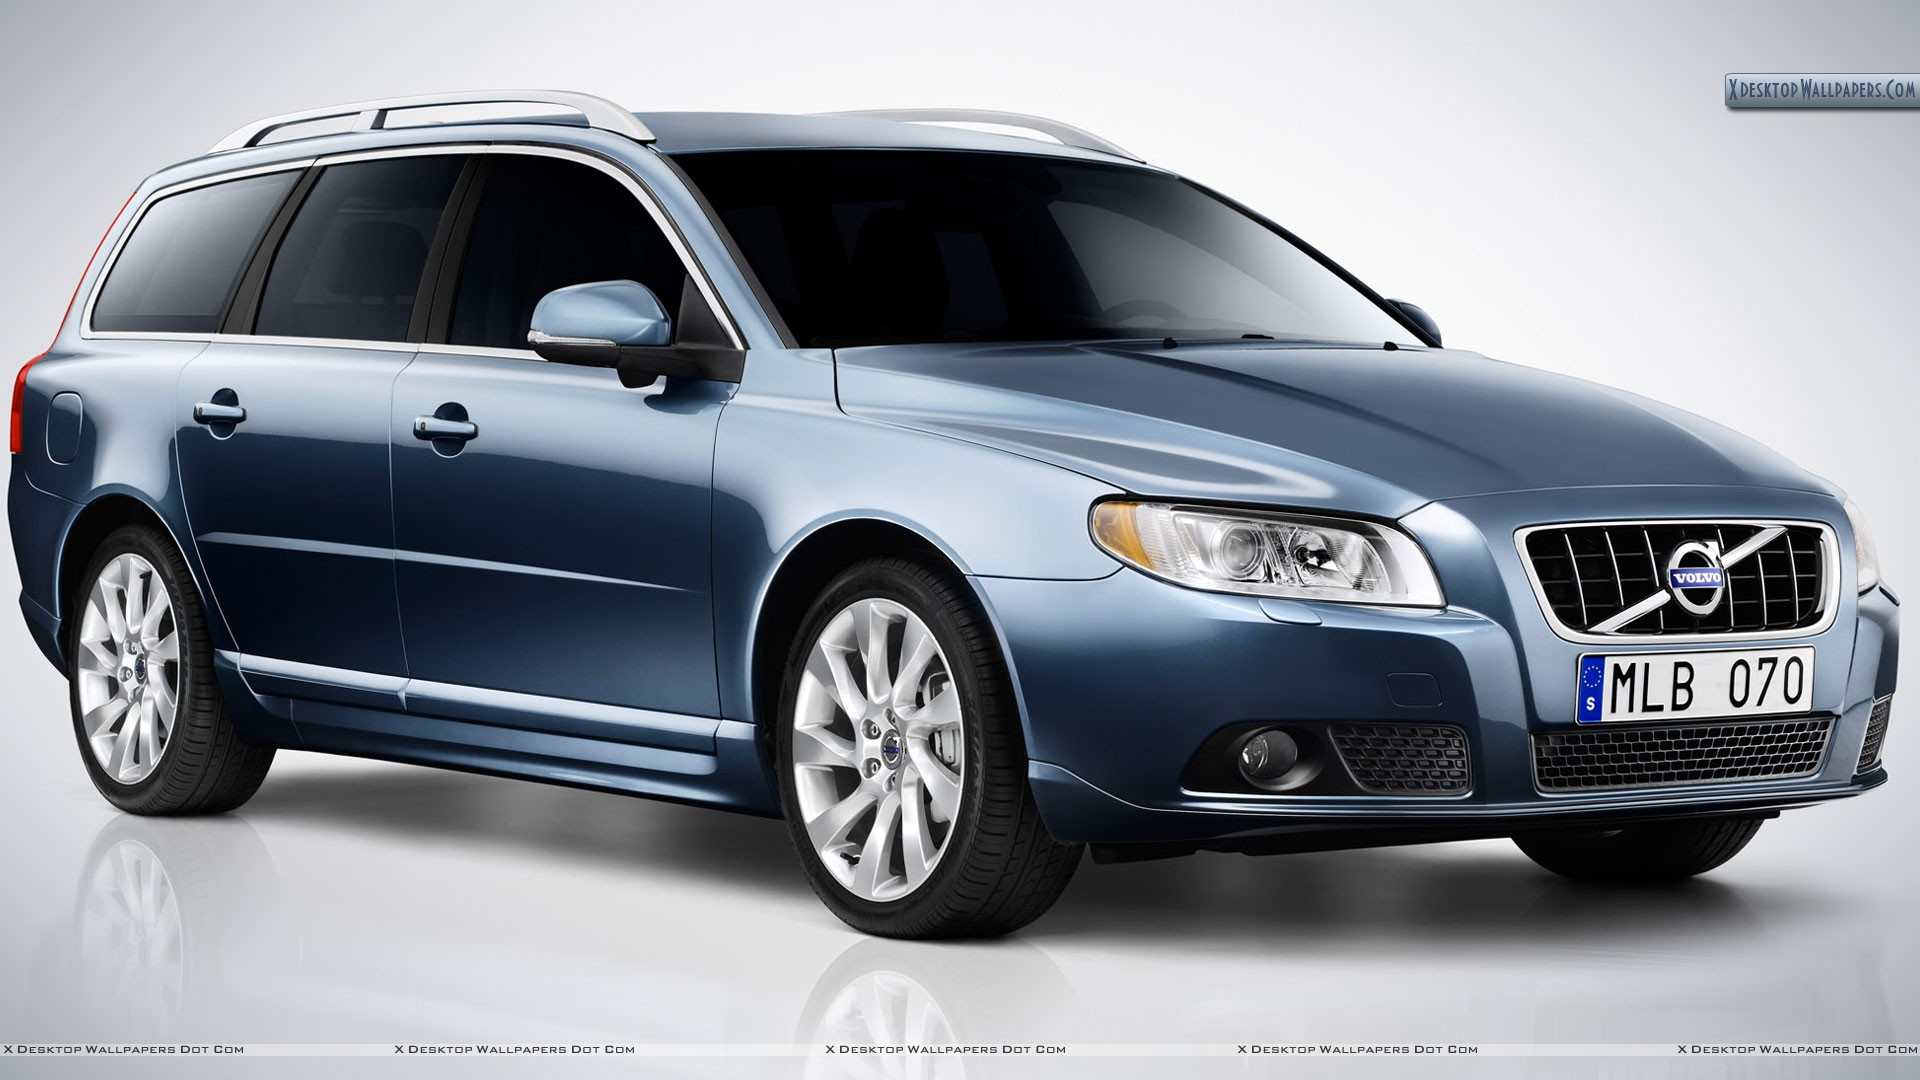 volvo v70 wallpapers photos images in hd. Black Bedroom Furniture Sets. Home Design Ideas